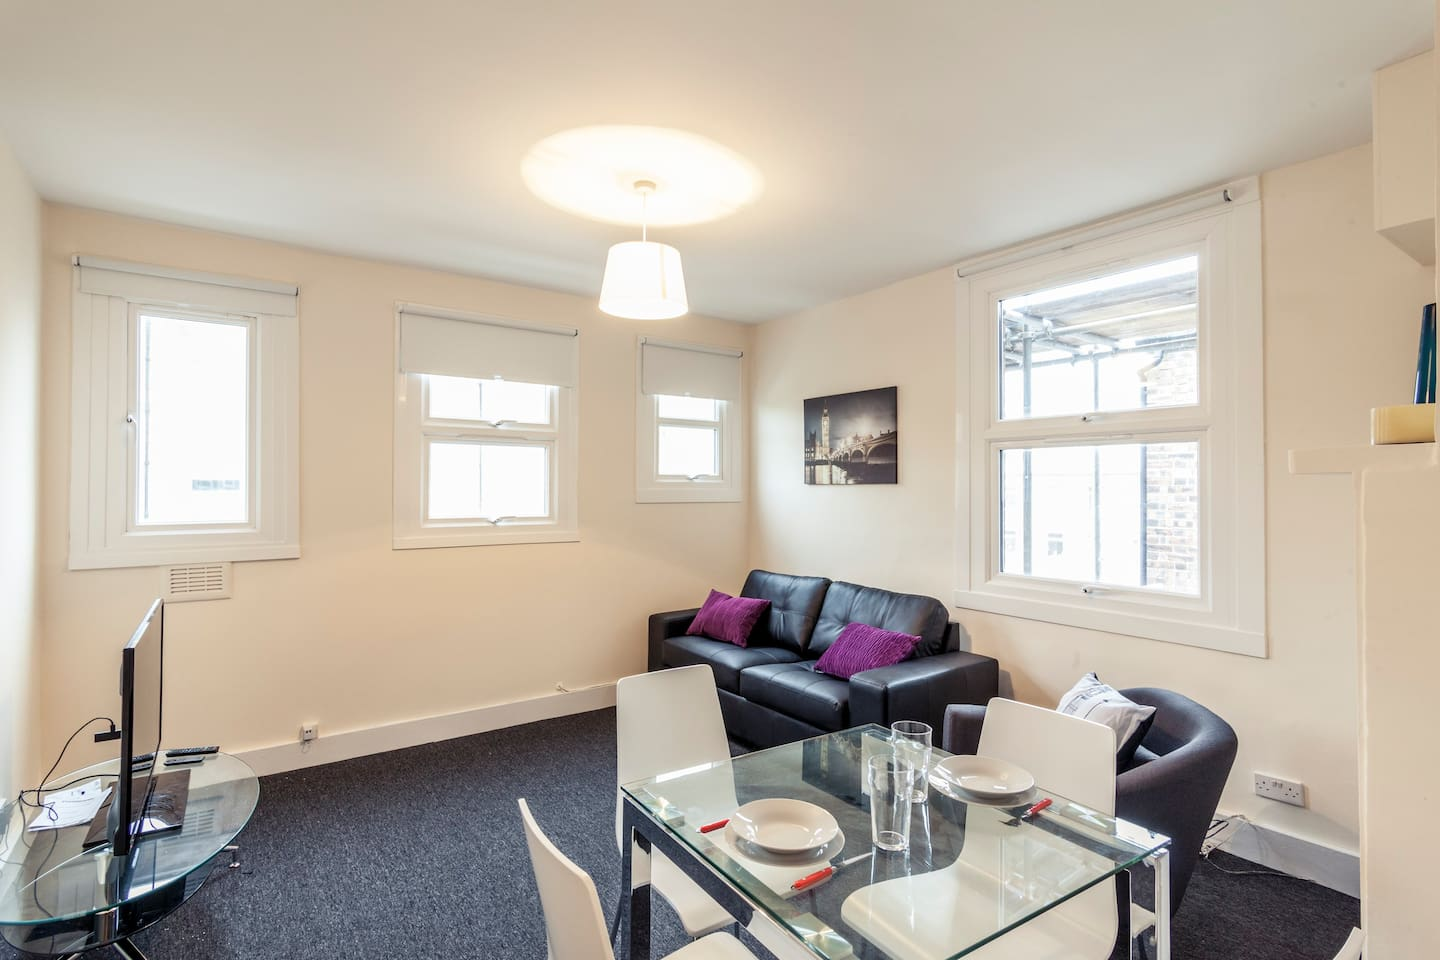 central london 2 bed flat in zone 1 wre apartments for rent in